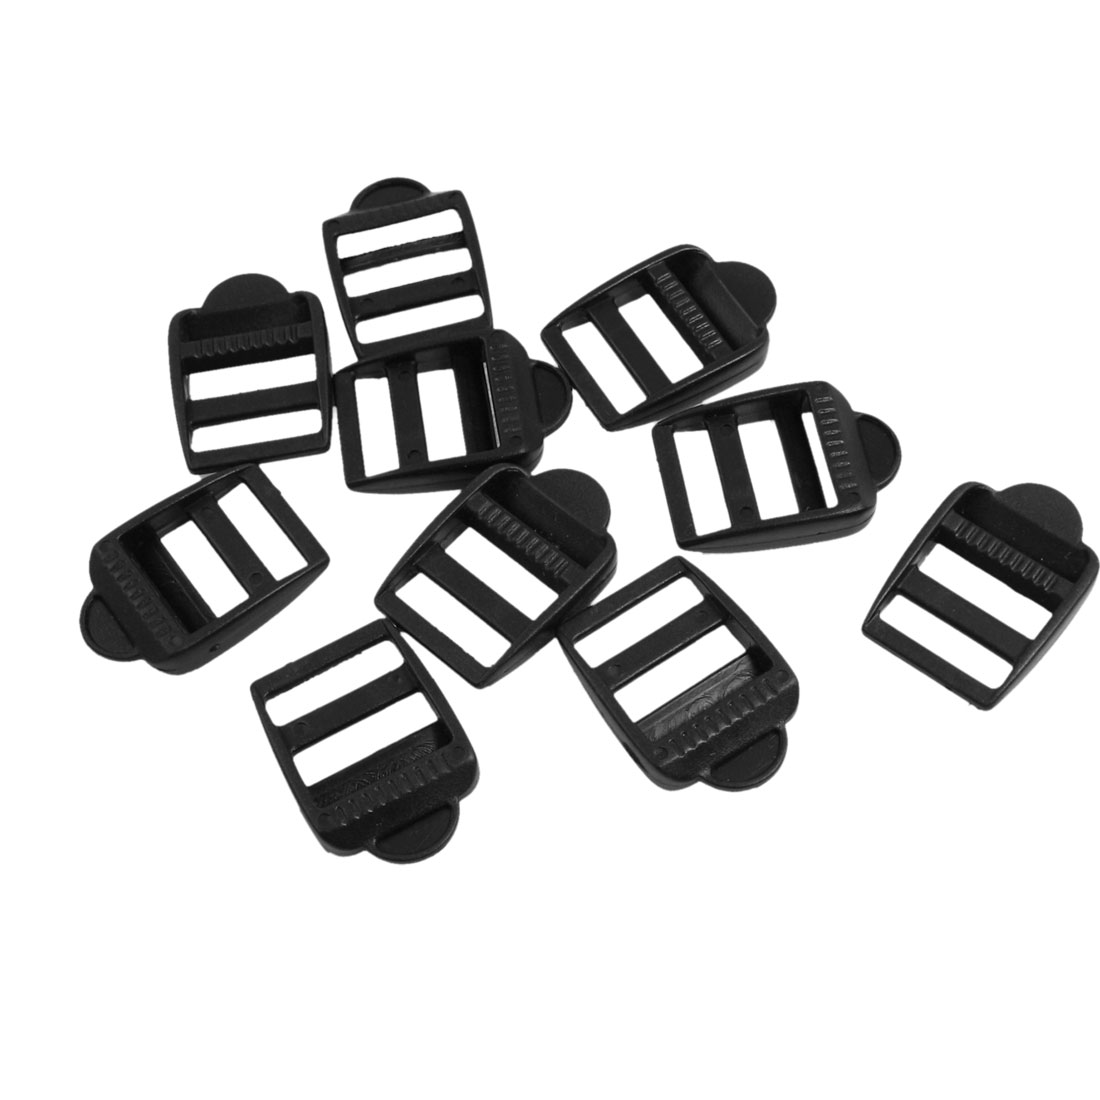 "10 x Plastic Black Luggage Bag Side Buckles for 25/32"" Width Strap"